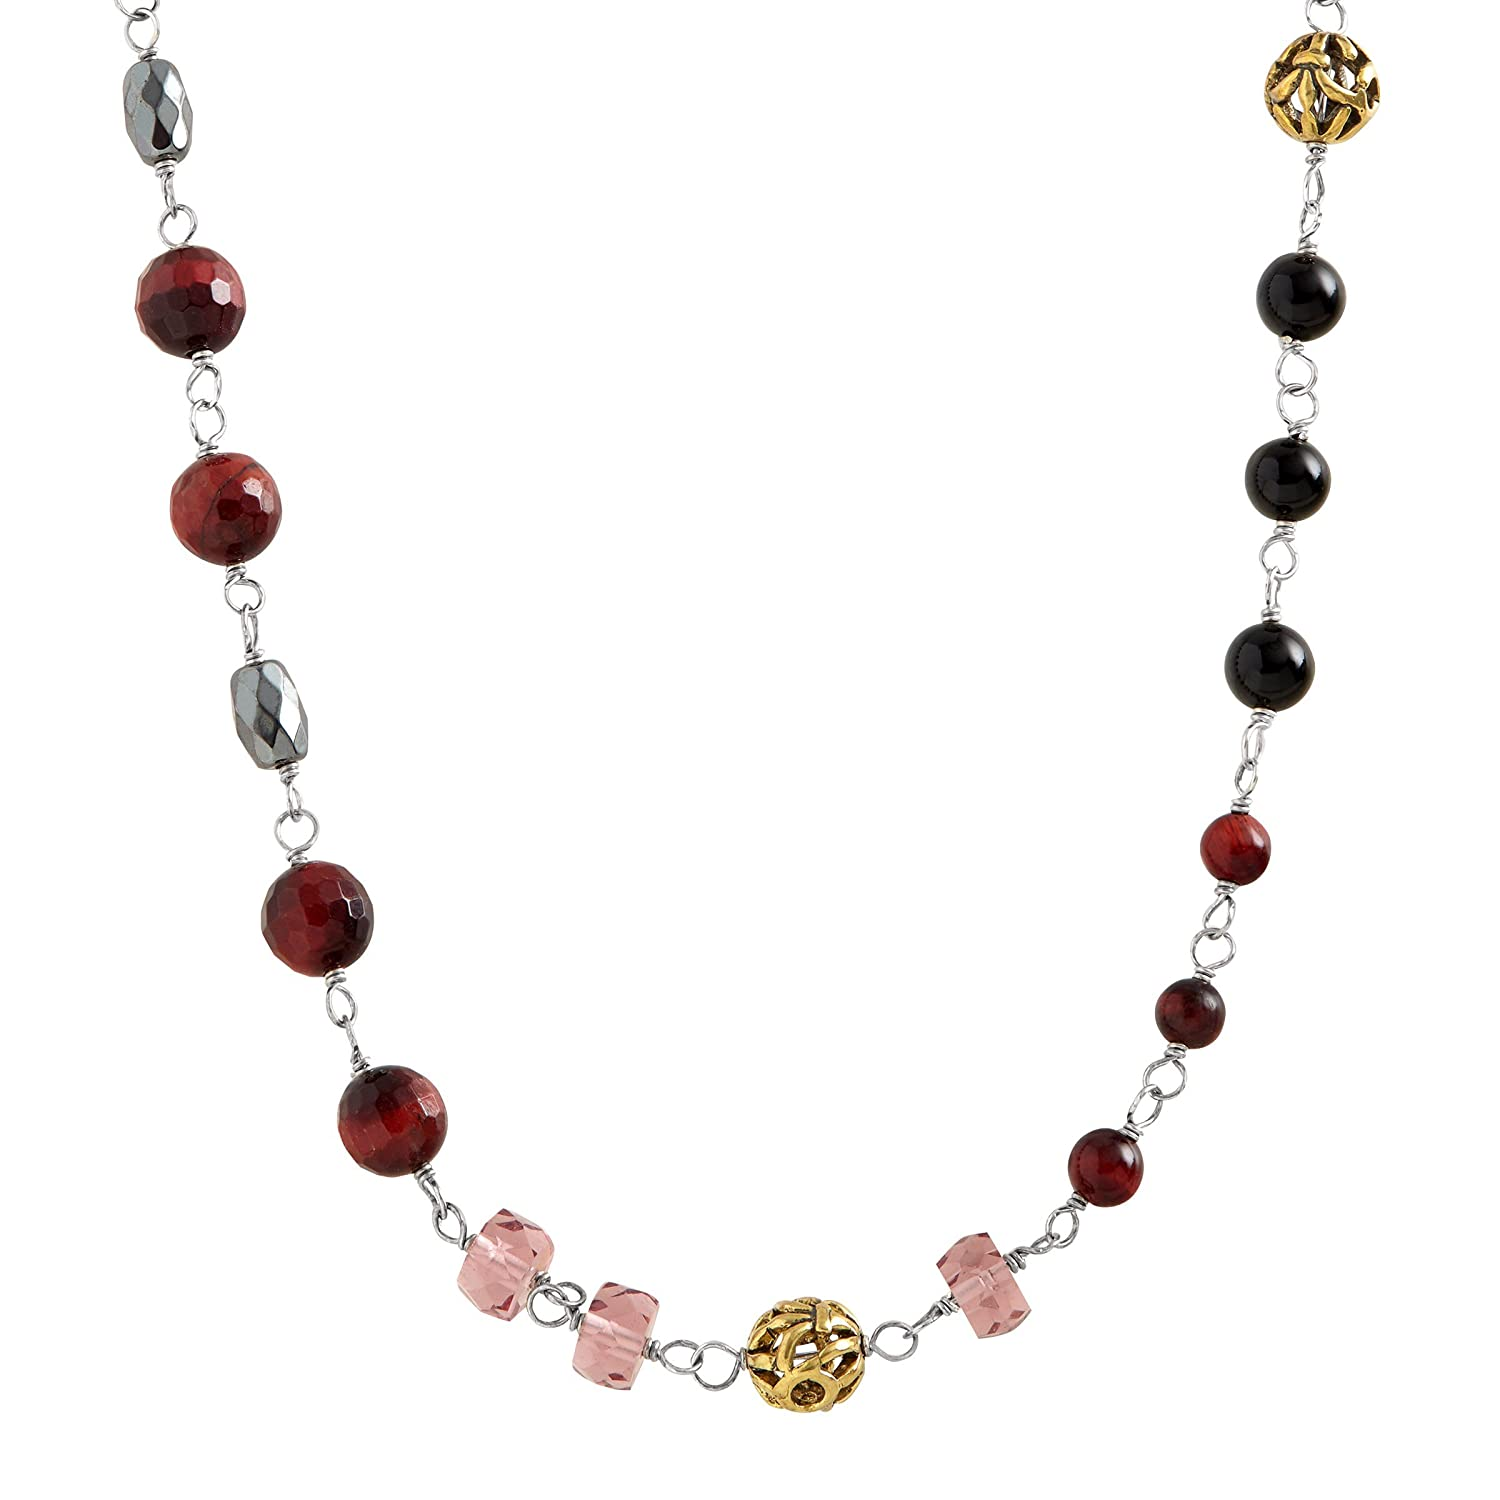 Silpada 'Burgundy Blush' Natural Agate, Hematite & Red Tiger's Eye Necklace in Sterling Silver & Brass Silpada 'Burgundy Blush' Natural Agate Hematite & Red Tiger's Eye Necklace in Sterling Silver & Brass Richline Group N3347